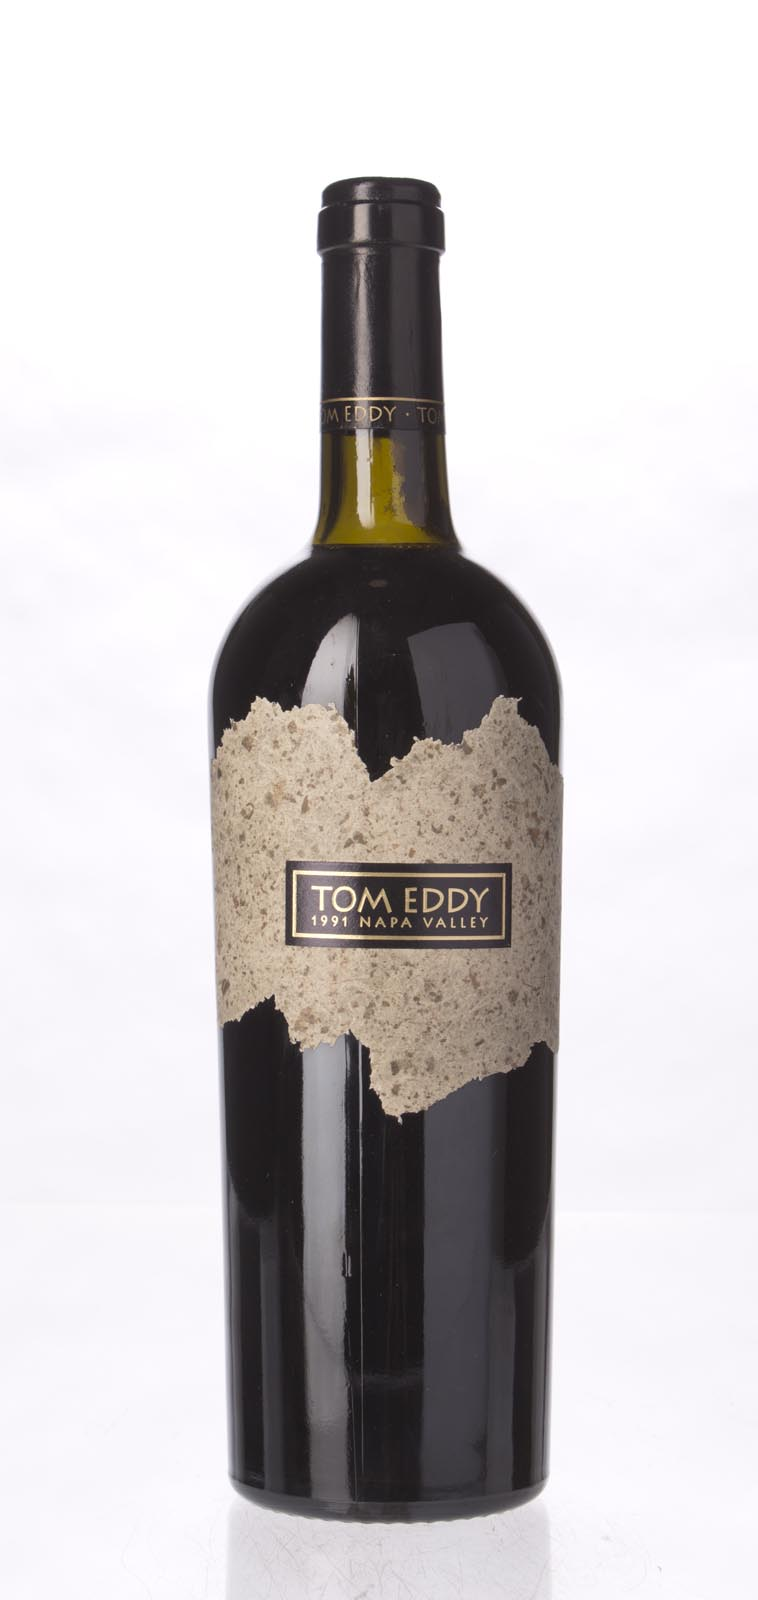 Tom Eddy Cabernet Sauvignon Napa Valley 1991, 750mL (WS91) from The BPW - Merchants of rare and fine wines.